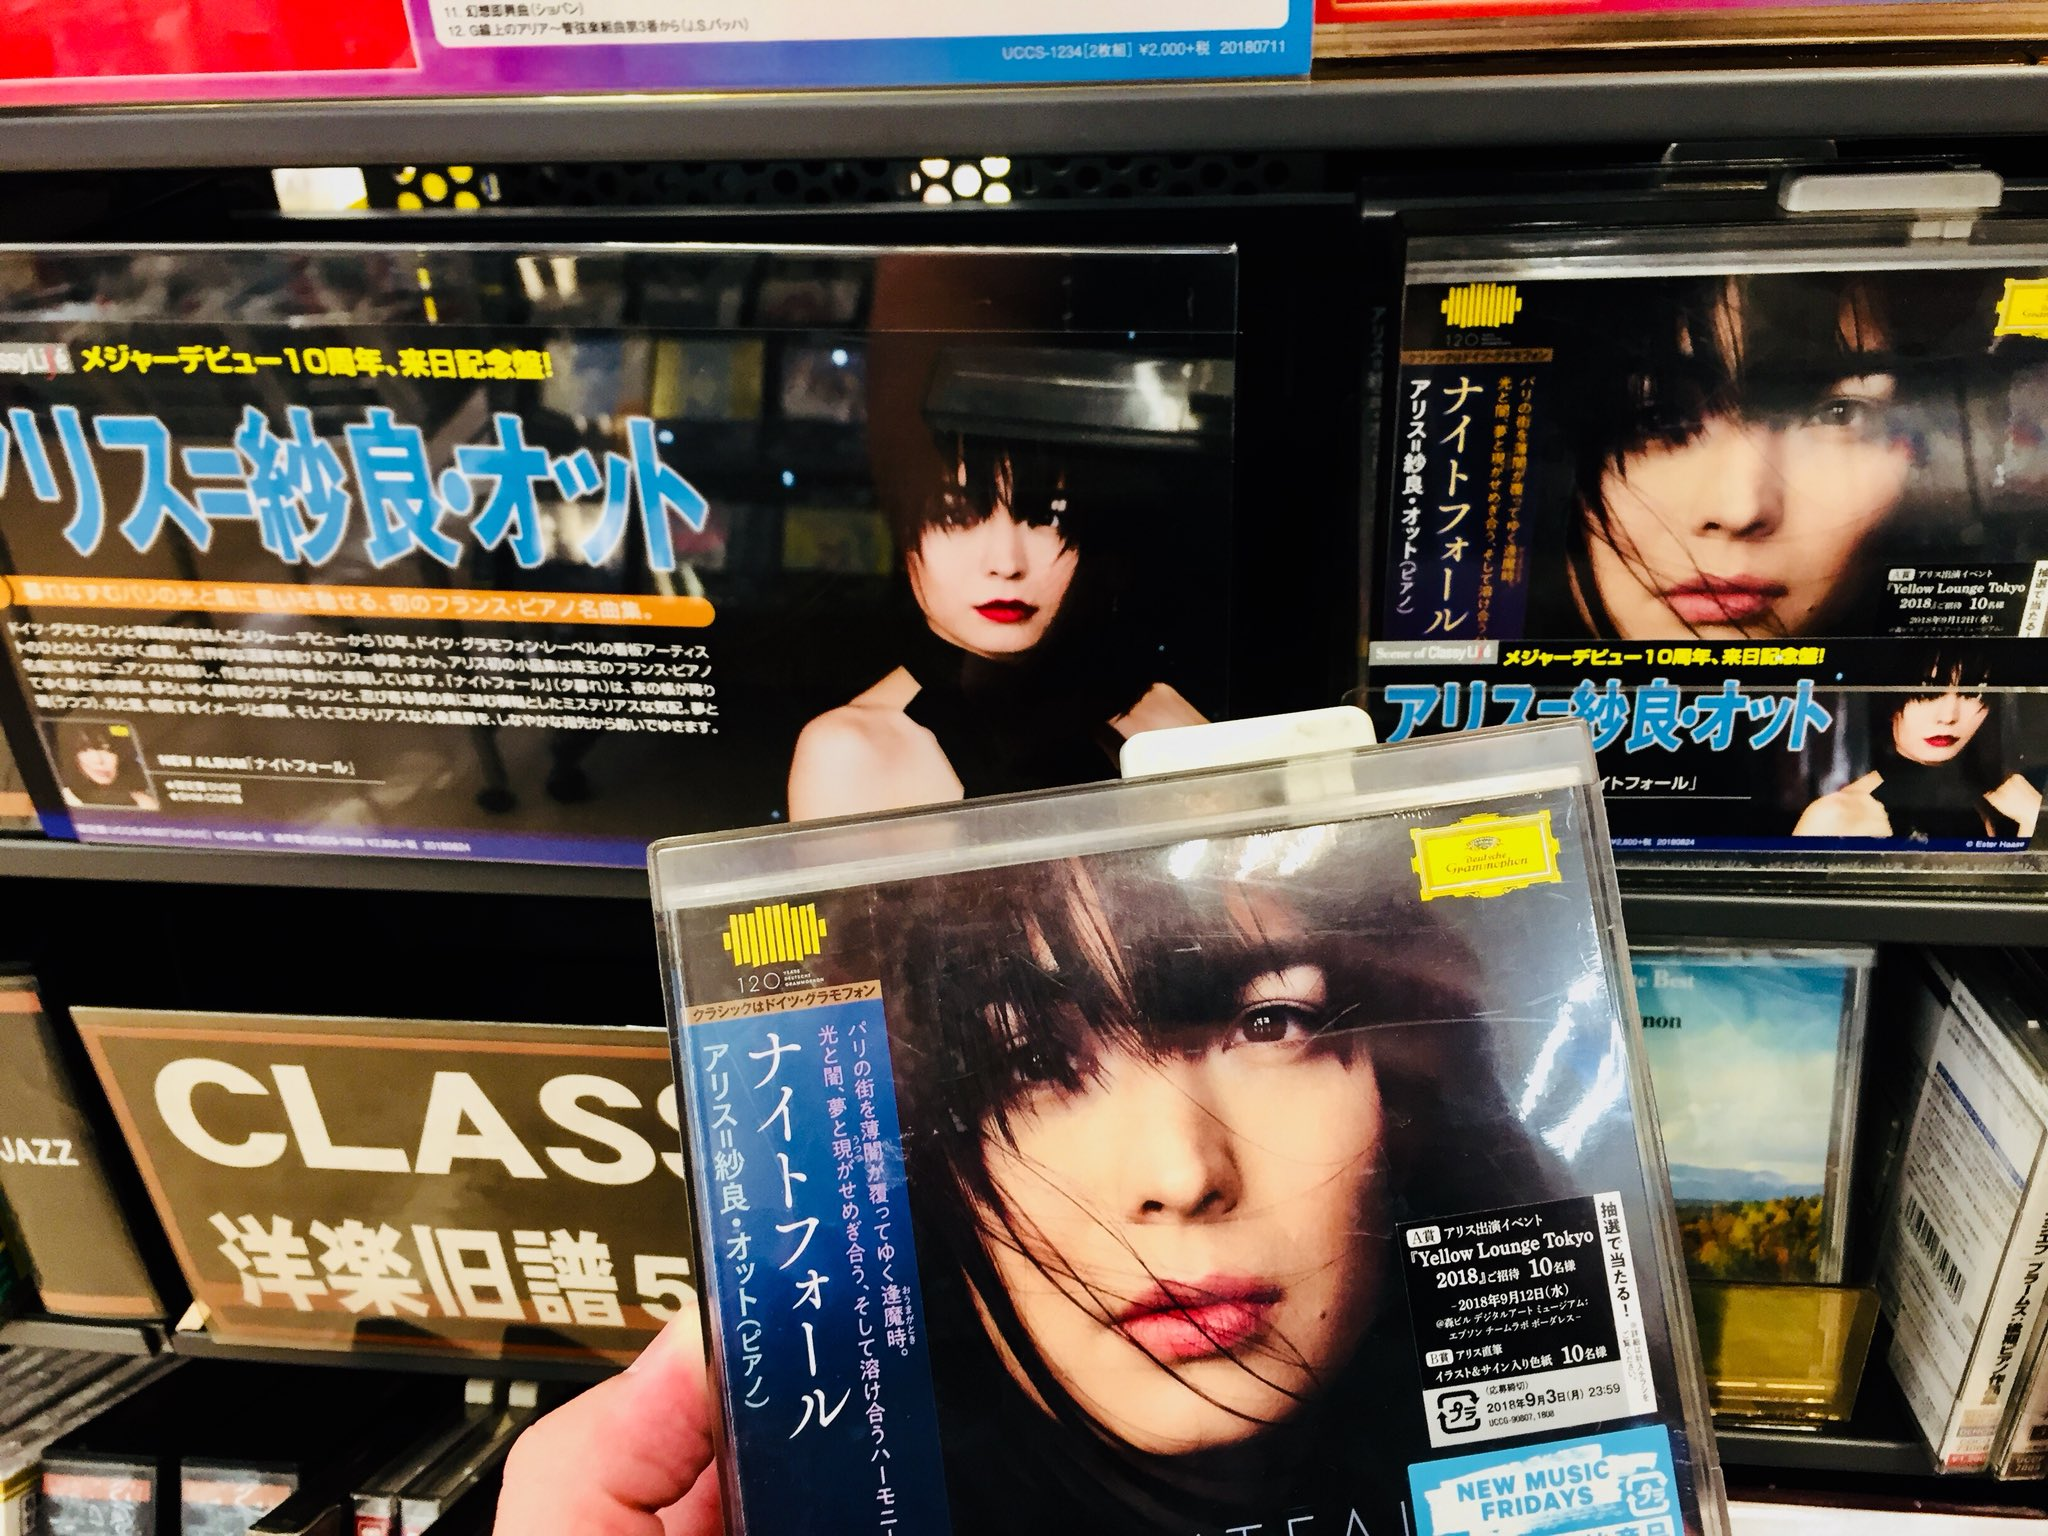 Reloaded twaddle – RT @C_THRILLER: I bought #Nightfall by Alice Sara Ott. It's a great album! It is...